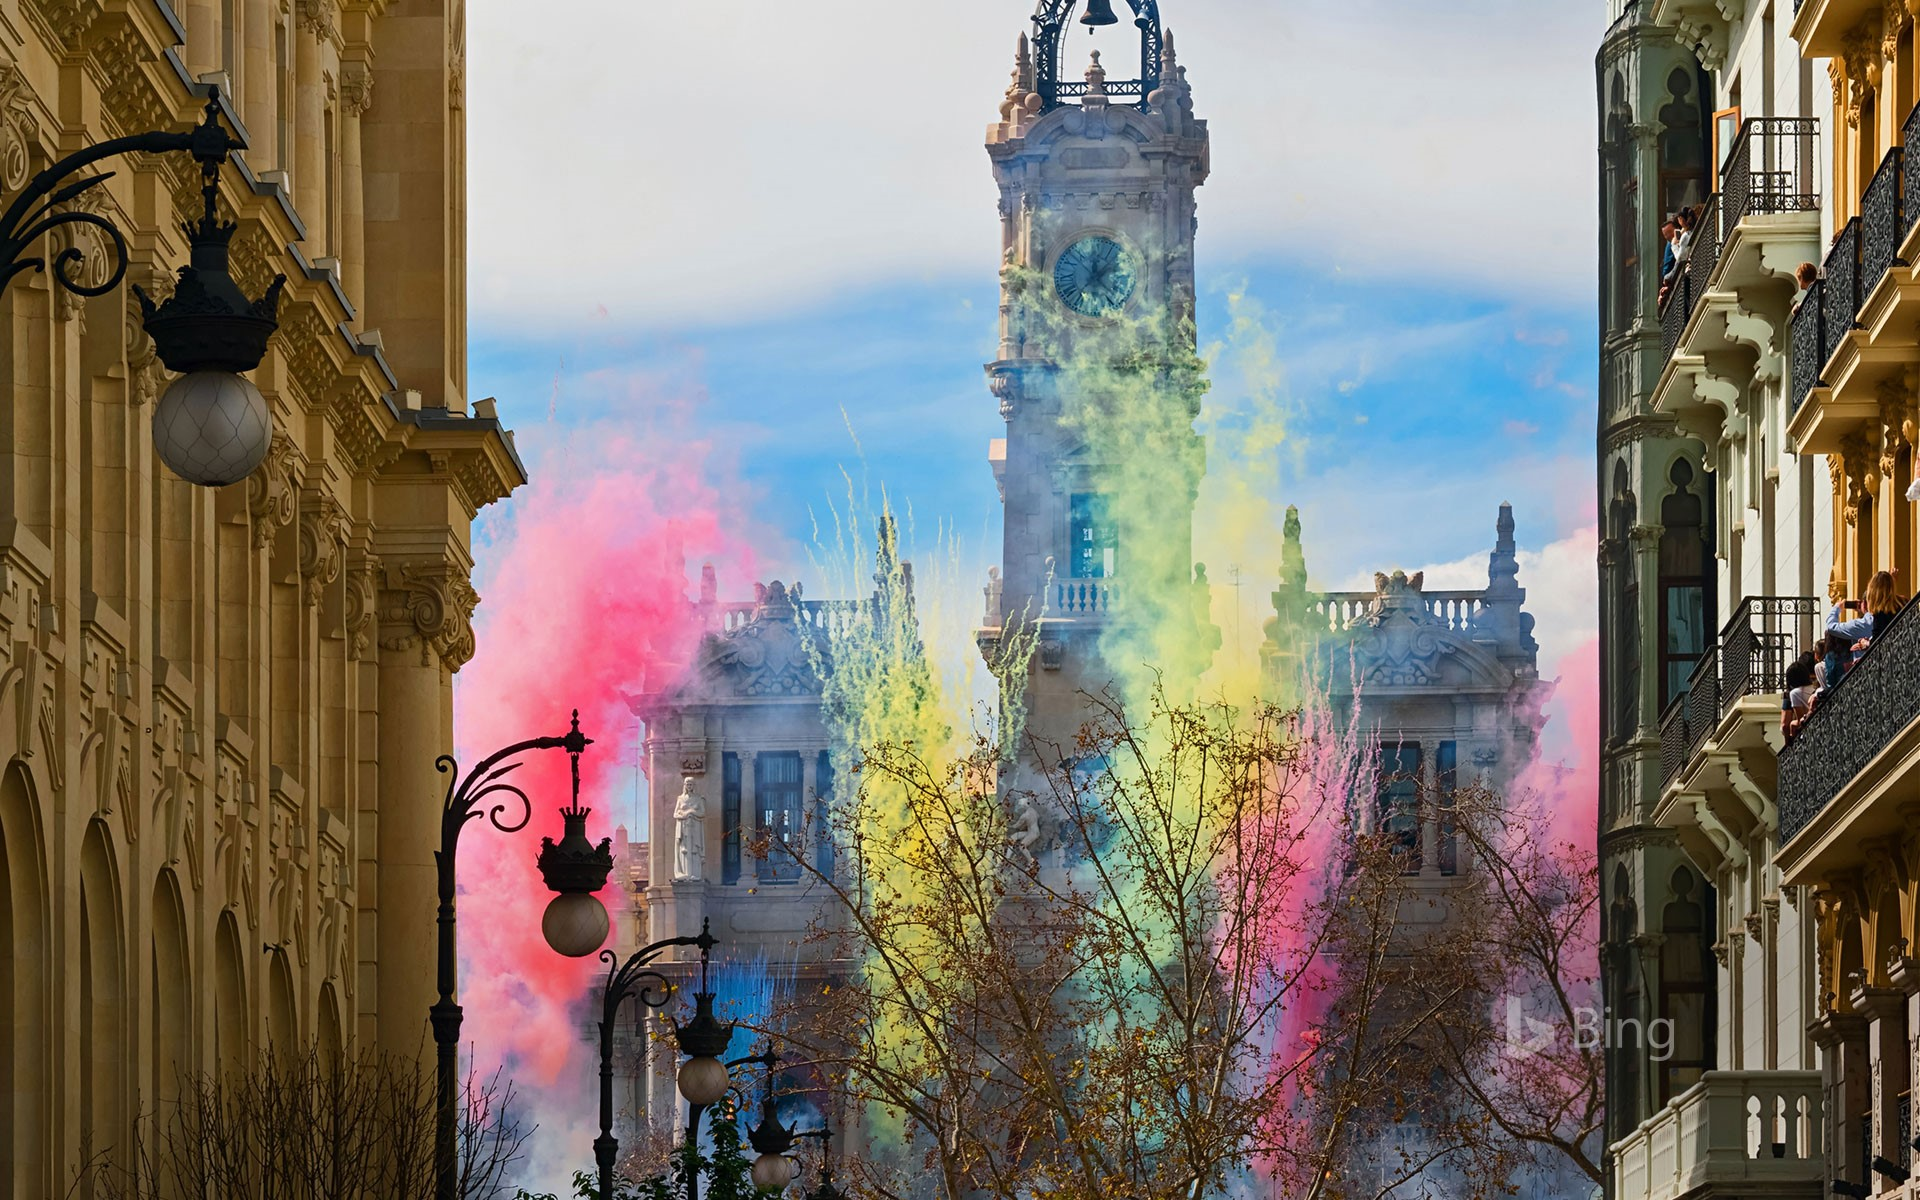 Fireworks at the Plaza del Ayuntamiento for Las Fallas festival in Valencia, Spain (© Helena G.H/Shutterstock)